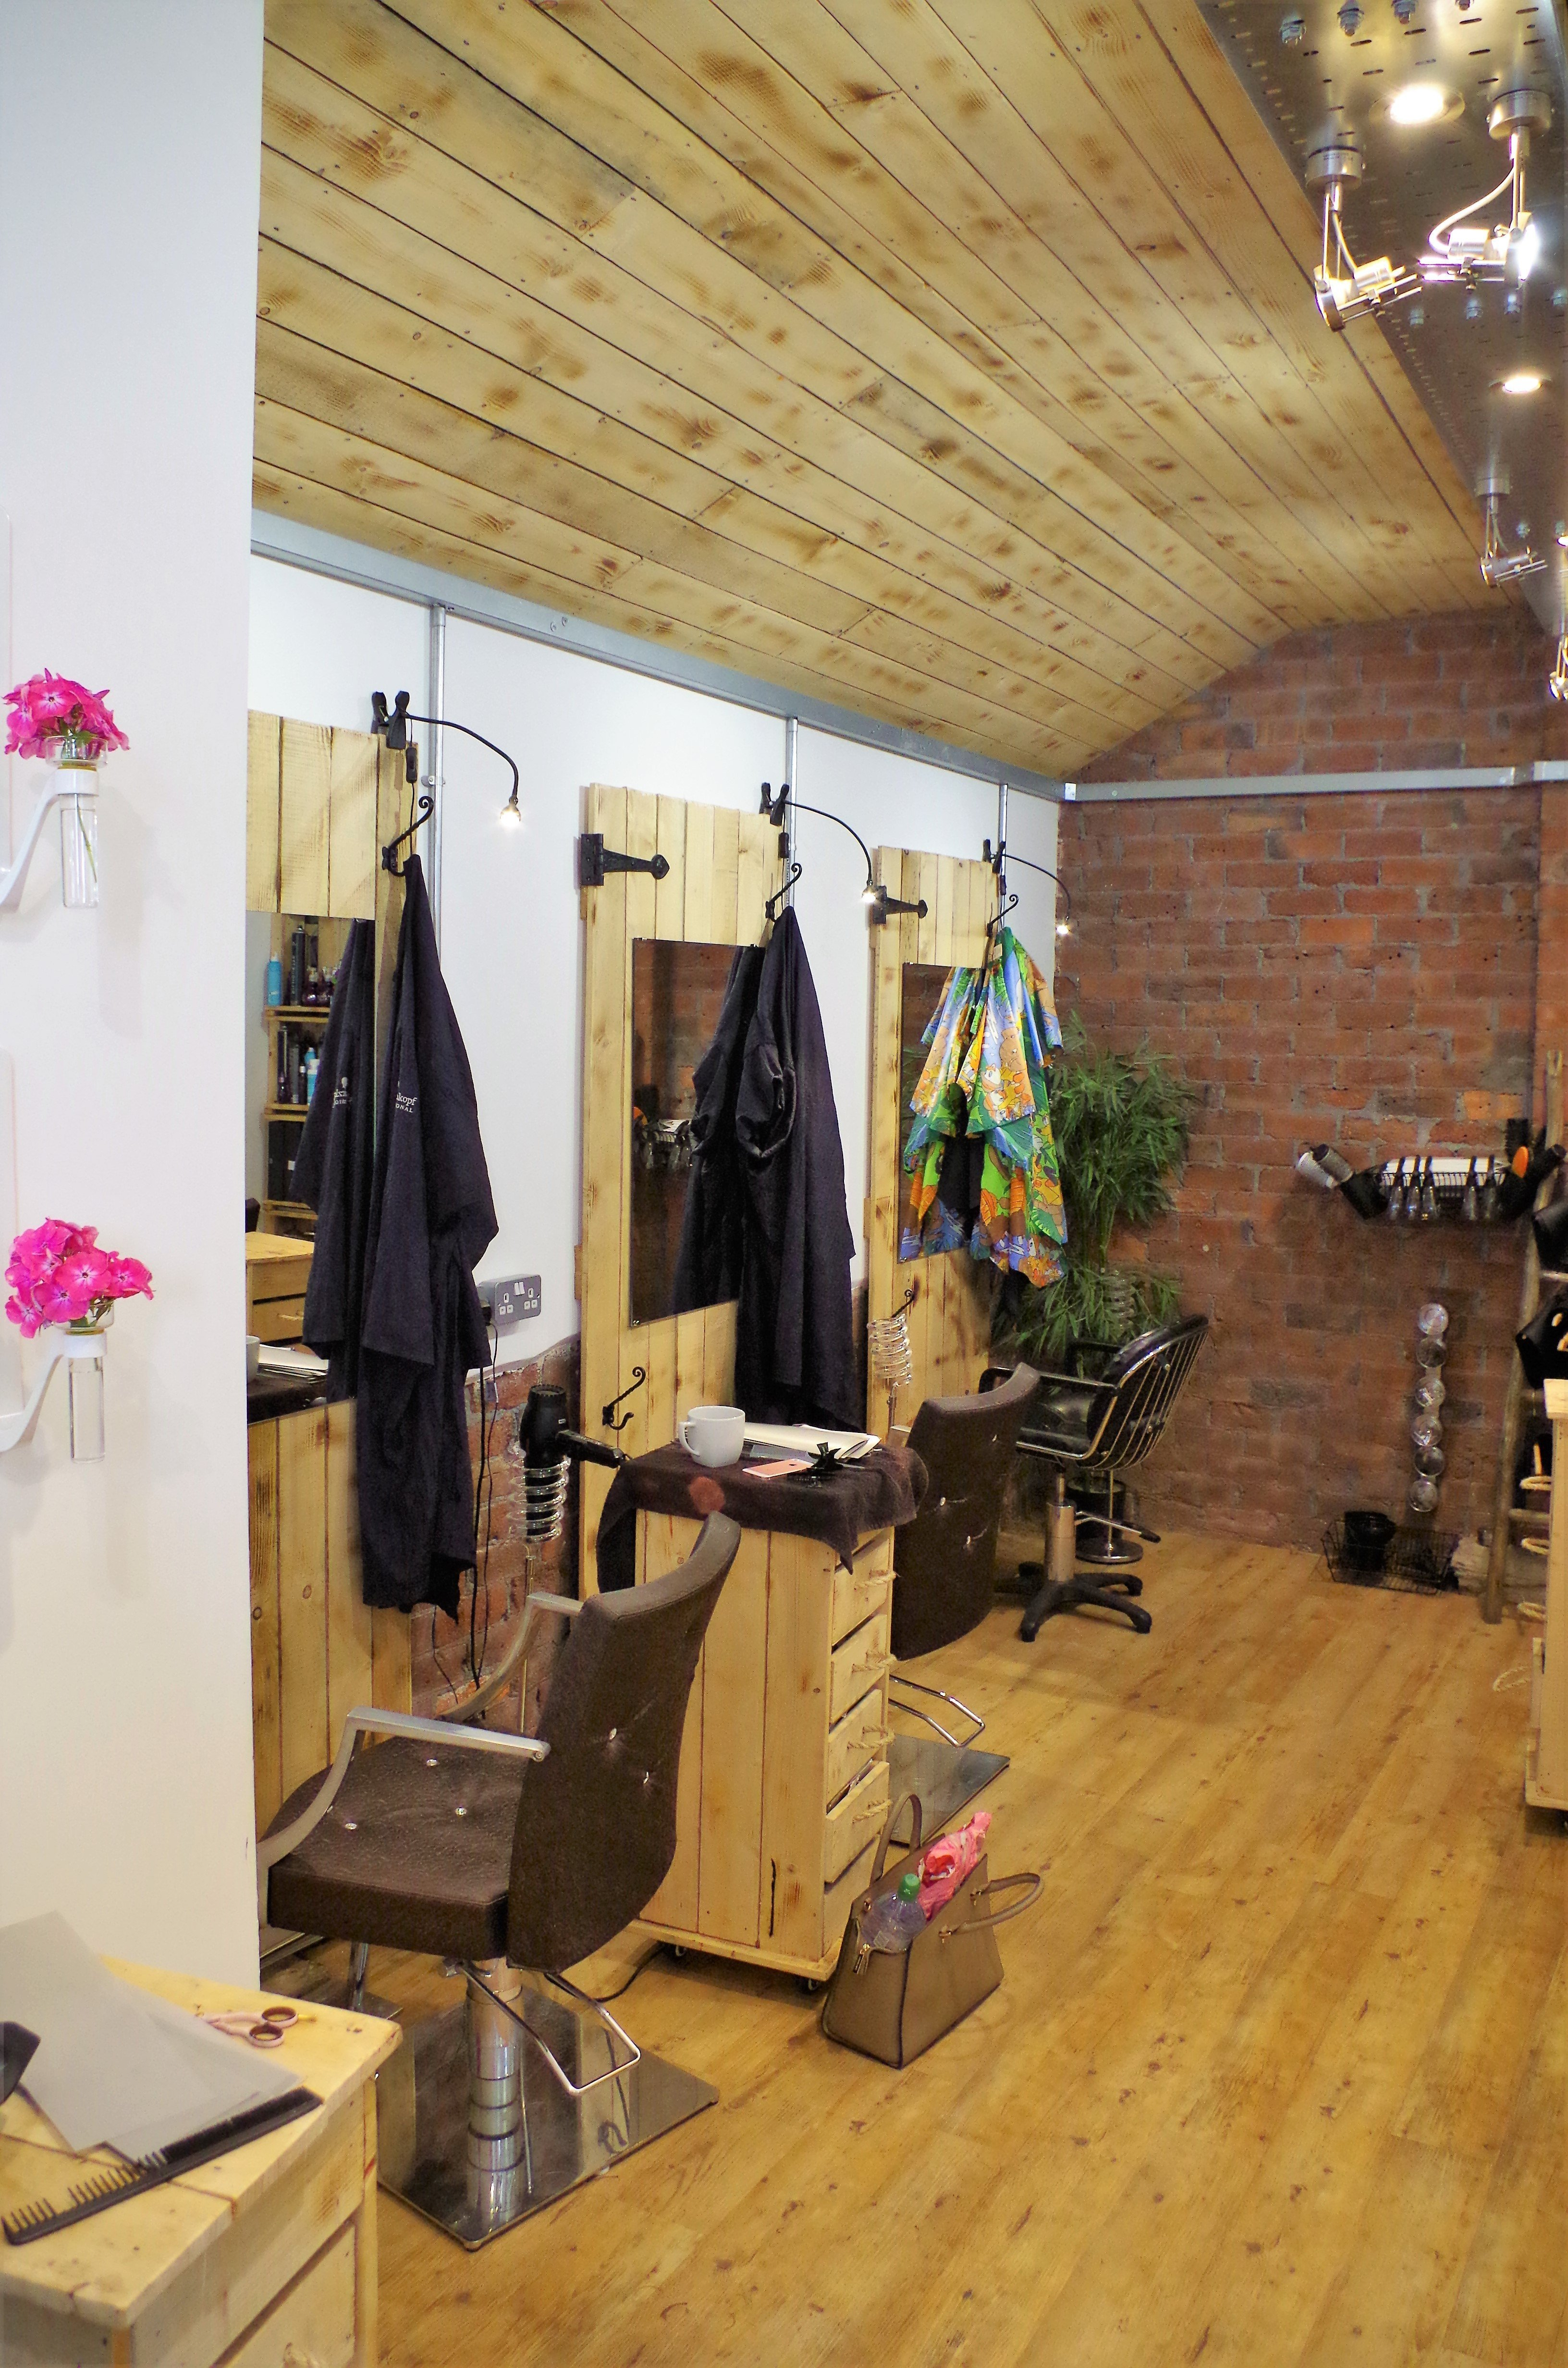 men's hairstyling area